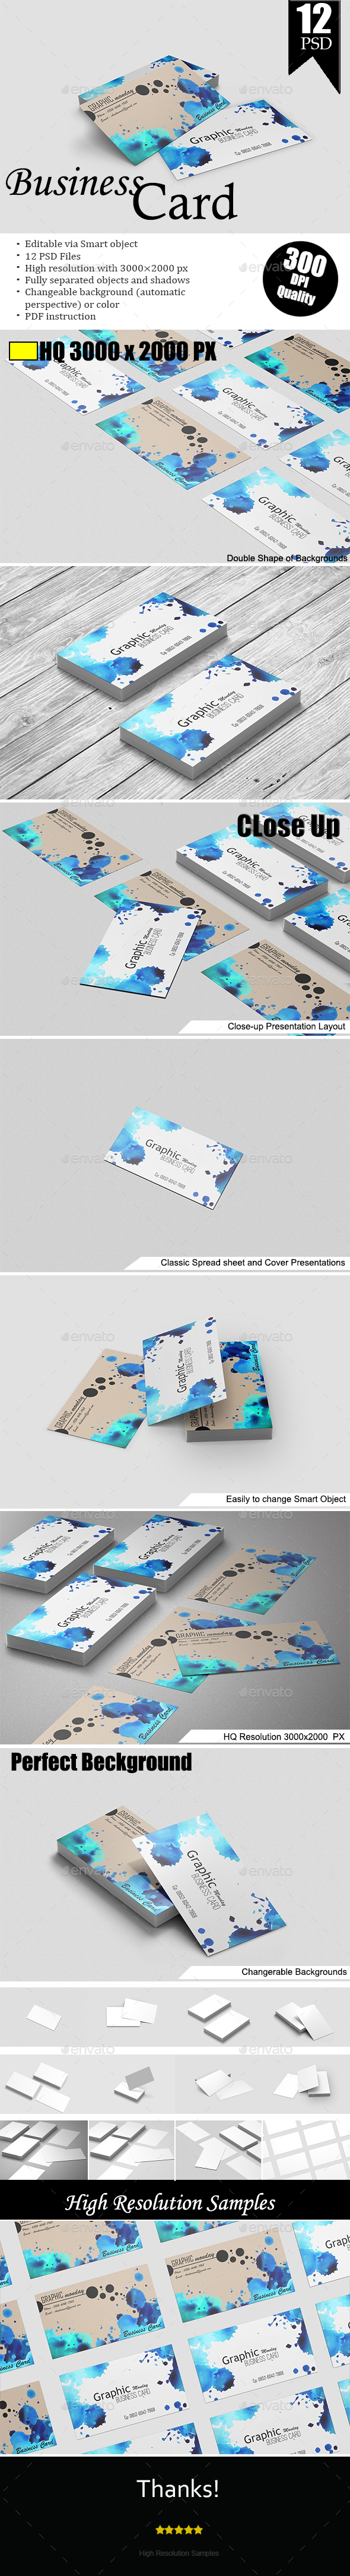 Business Cards Mockup - Business Cards Print